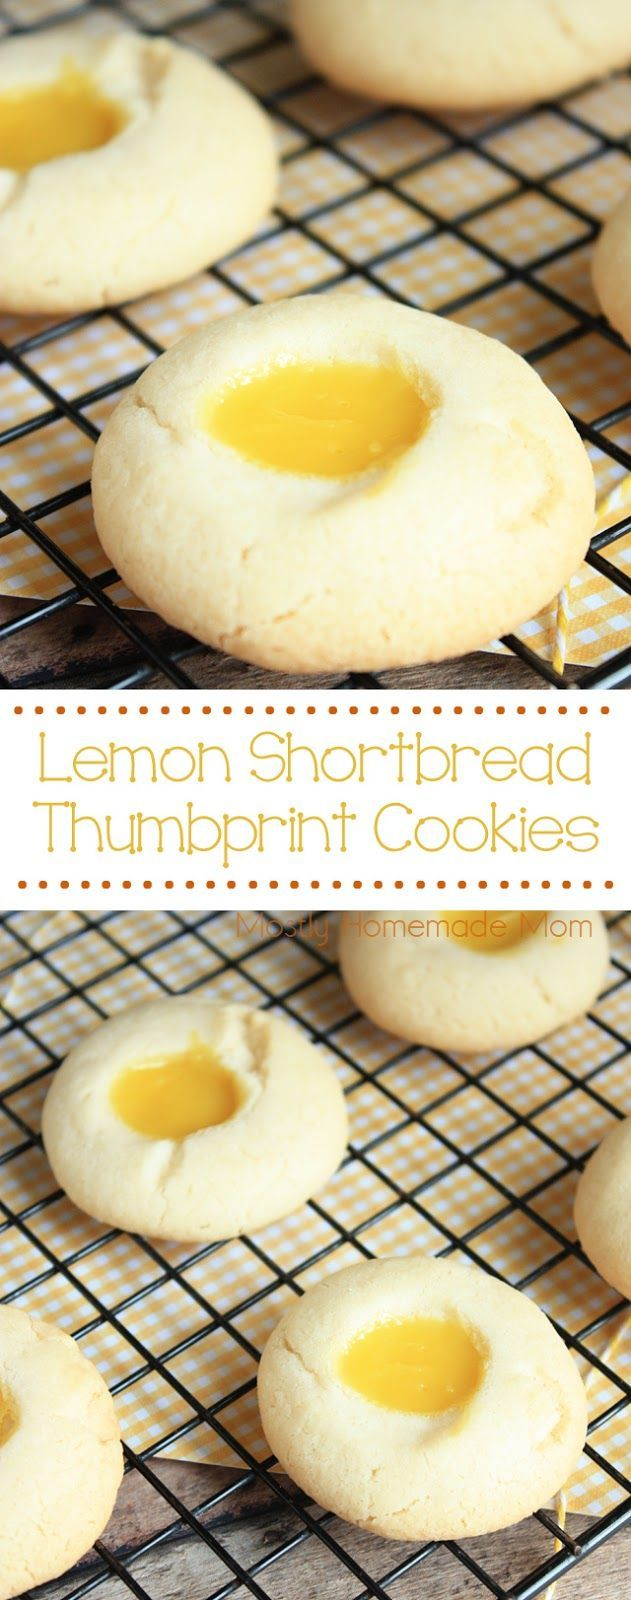 Lemon Shortbread Thumbprint Cookies - Light shortbread cookies filled with lemon pie filling, these cookies are perfect for lunchboxes and gifts because they stack so well!